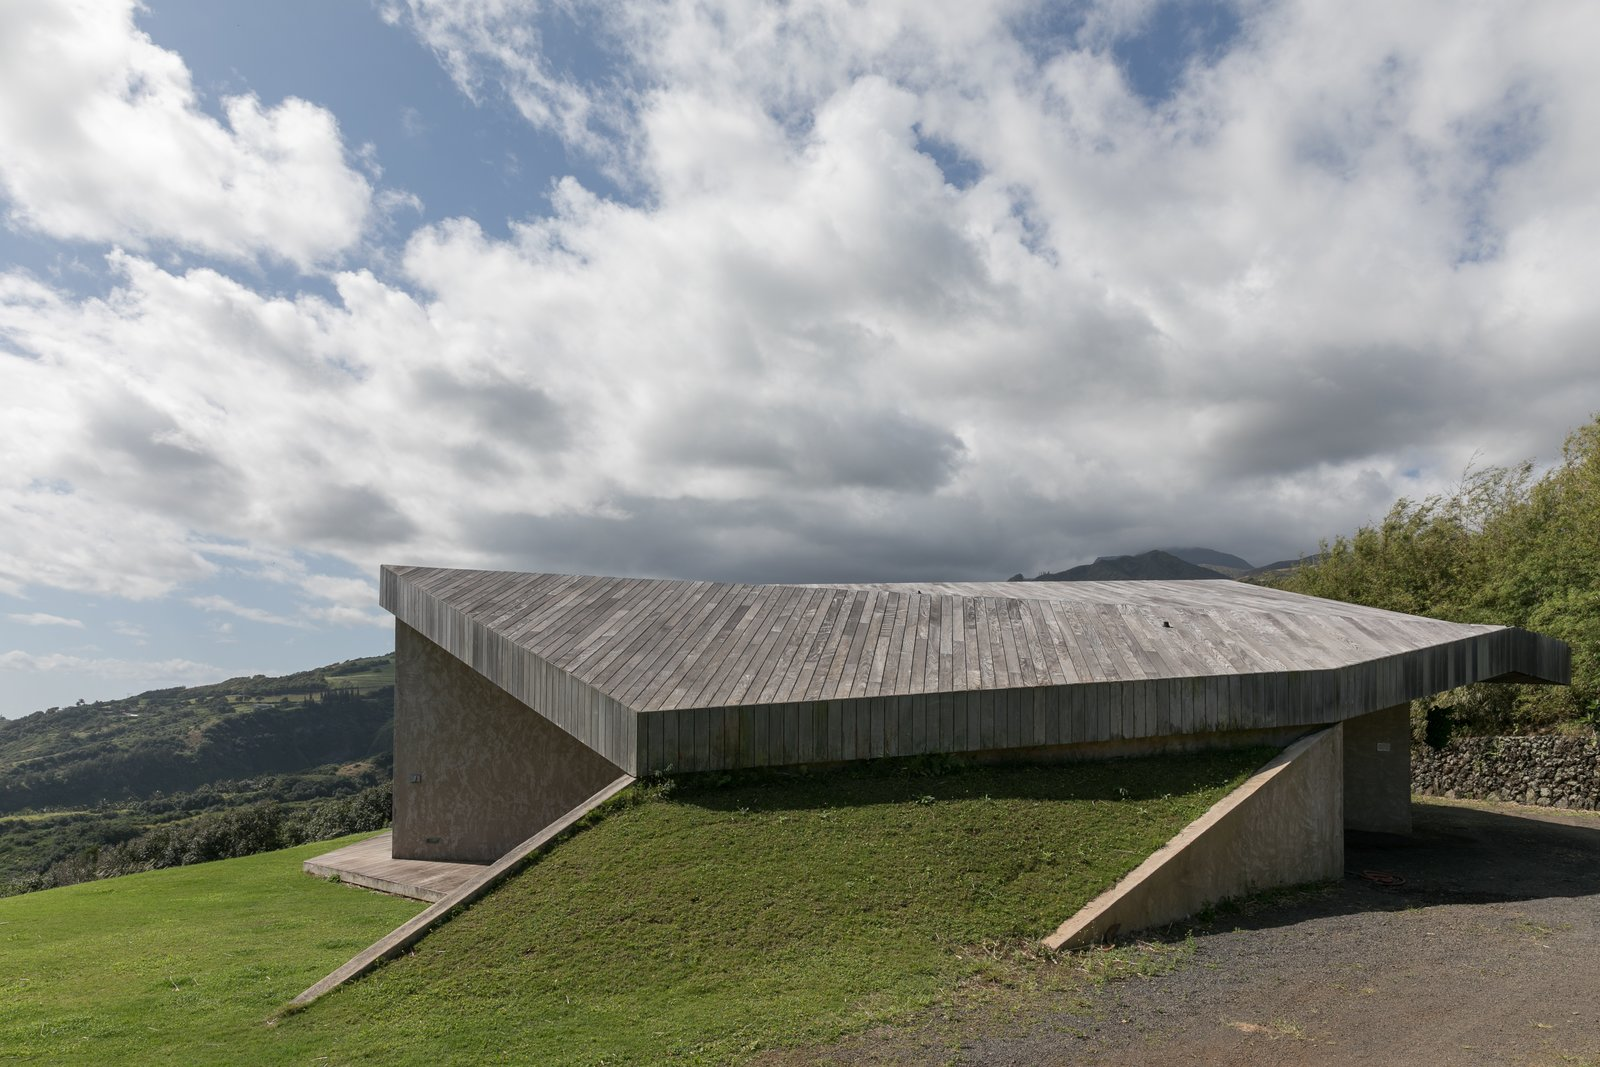 Organic Architecture exemplified here - an Ipe clad roof top rises gently from the grass.